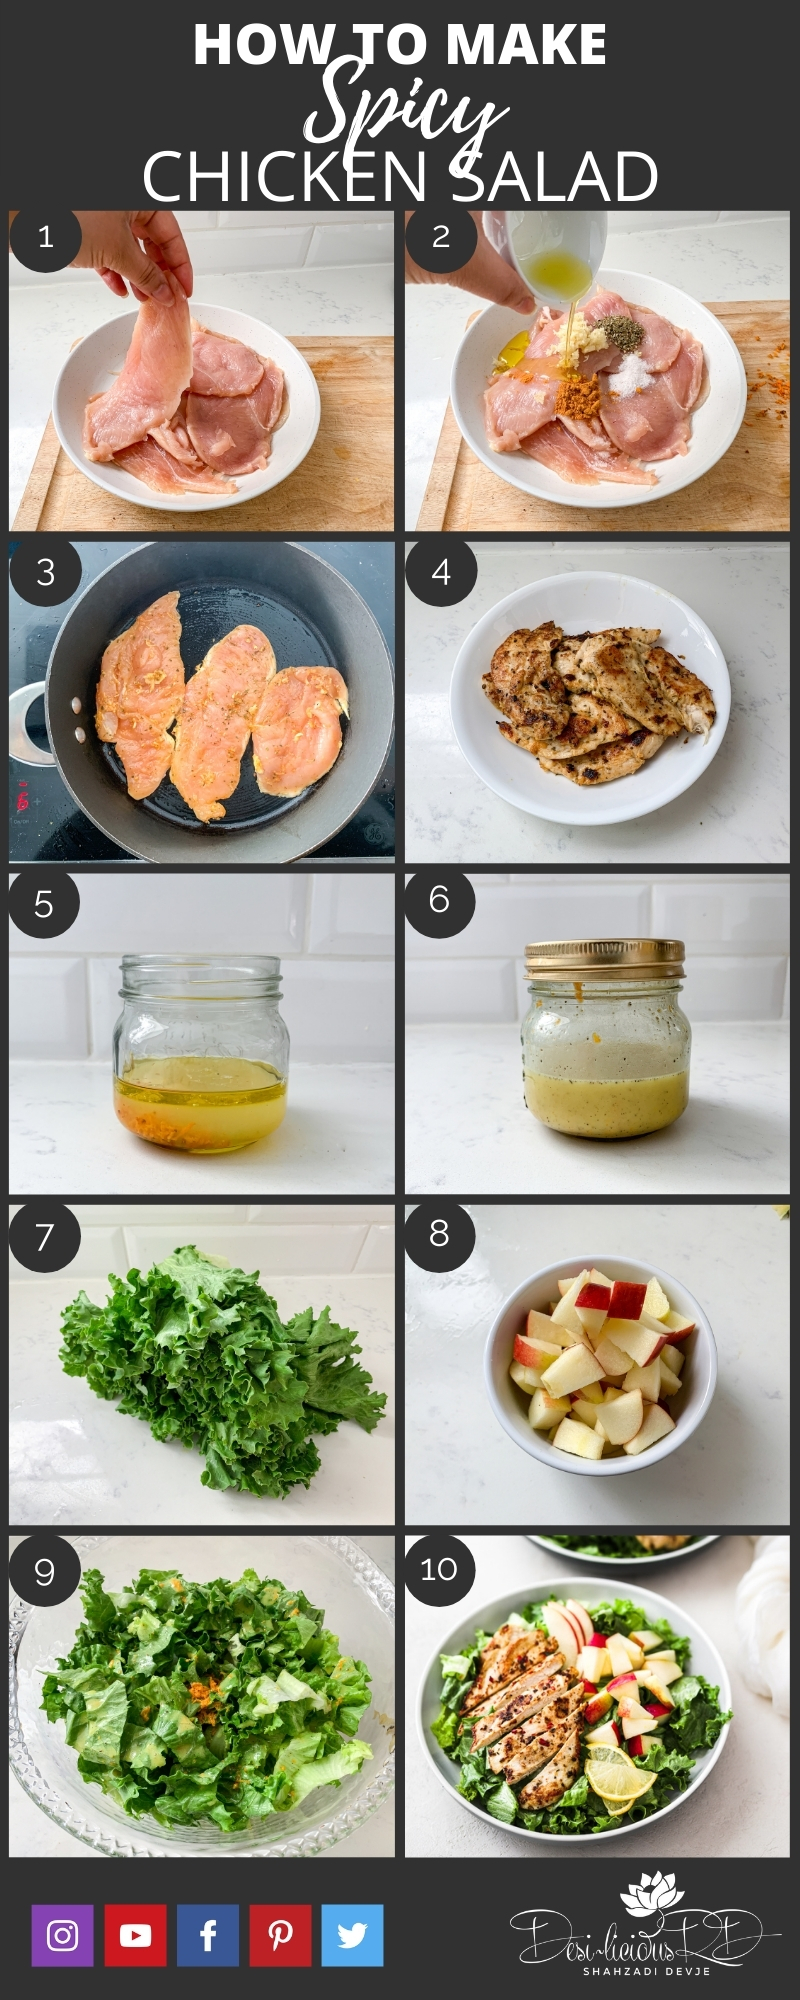 step by step preparation shots of how to make an easy and healthy spicy chicken salad